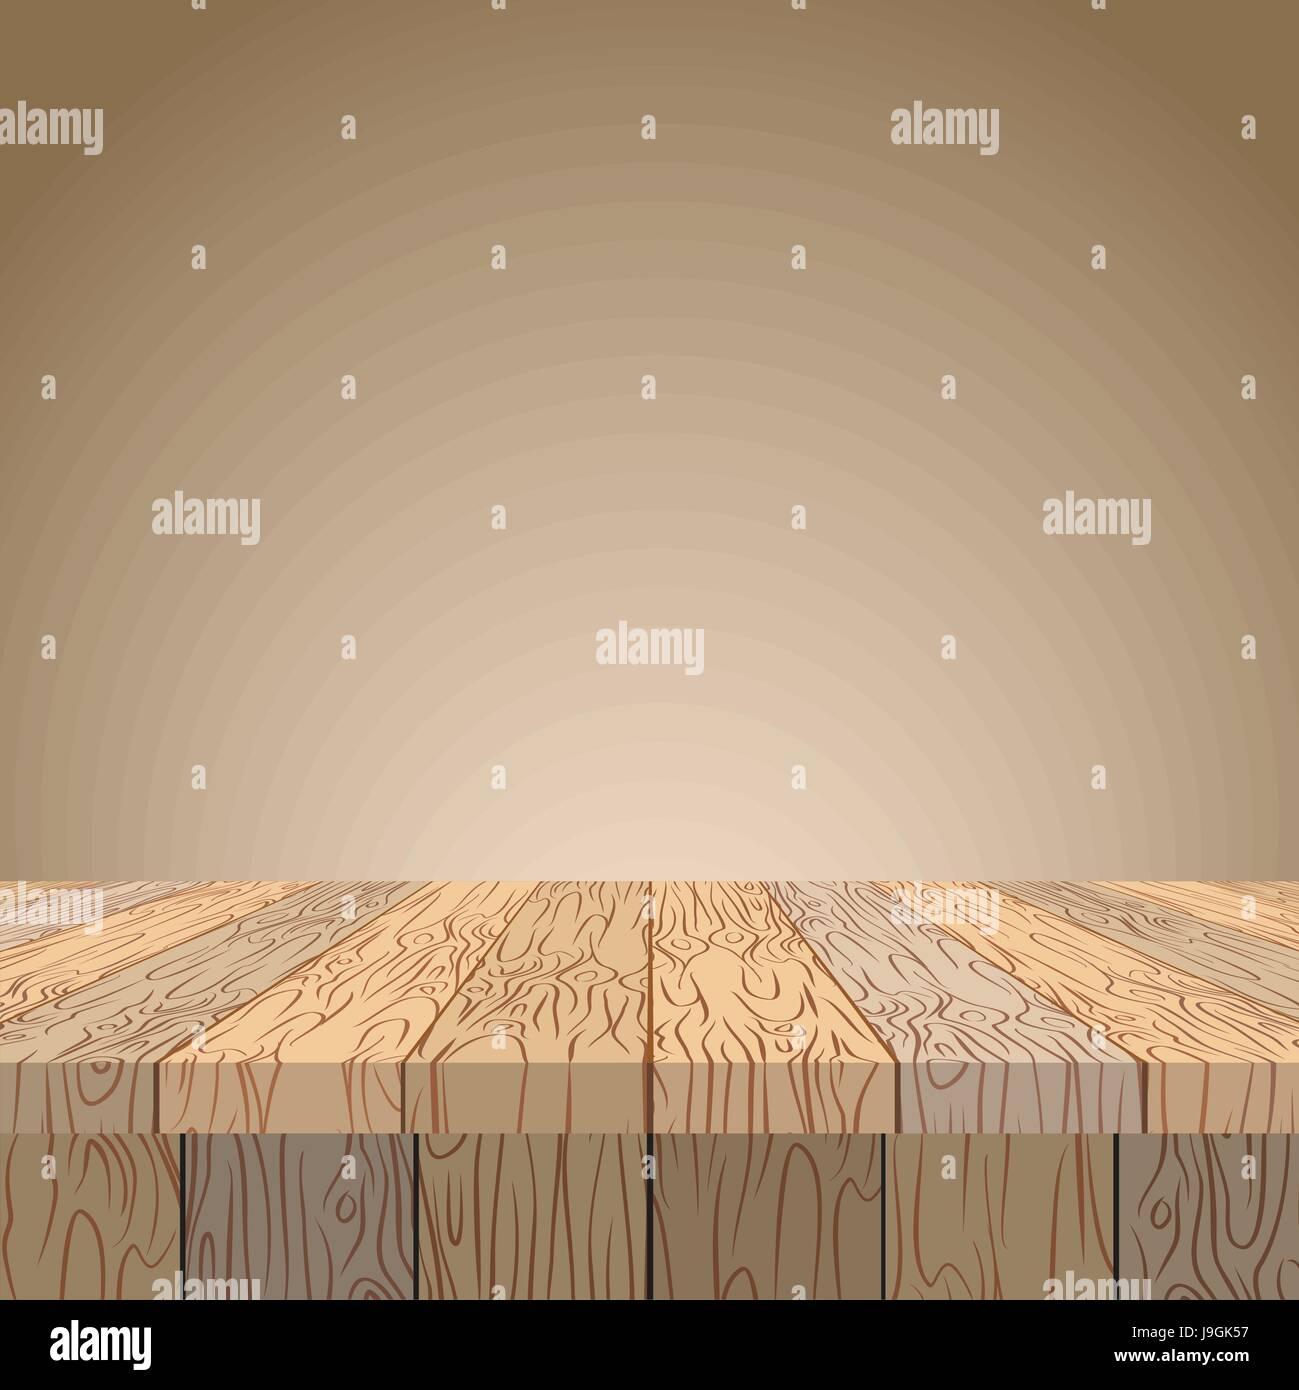 Wooden table Wooden surface Wood texture Planks of wood in Stock